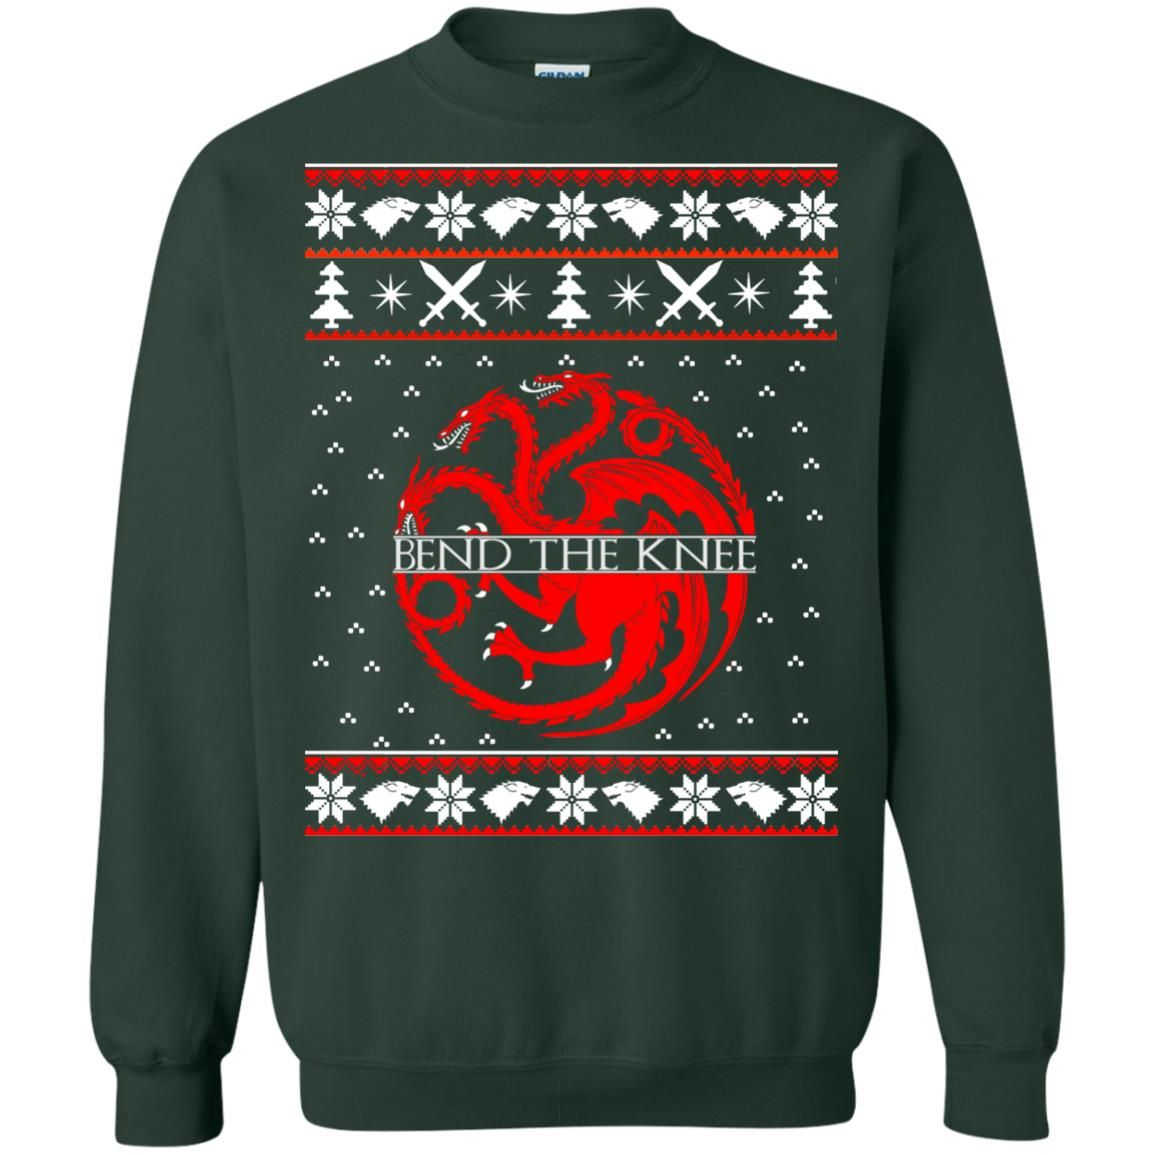 image 871 - Game of Thrones Bend the knee Christmas sweater, long sleeve